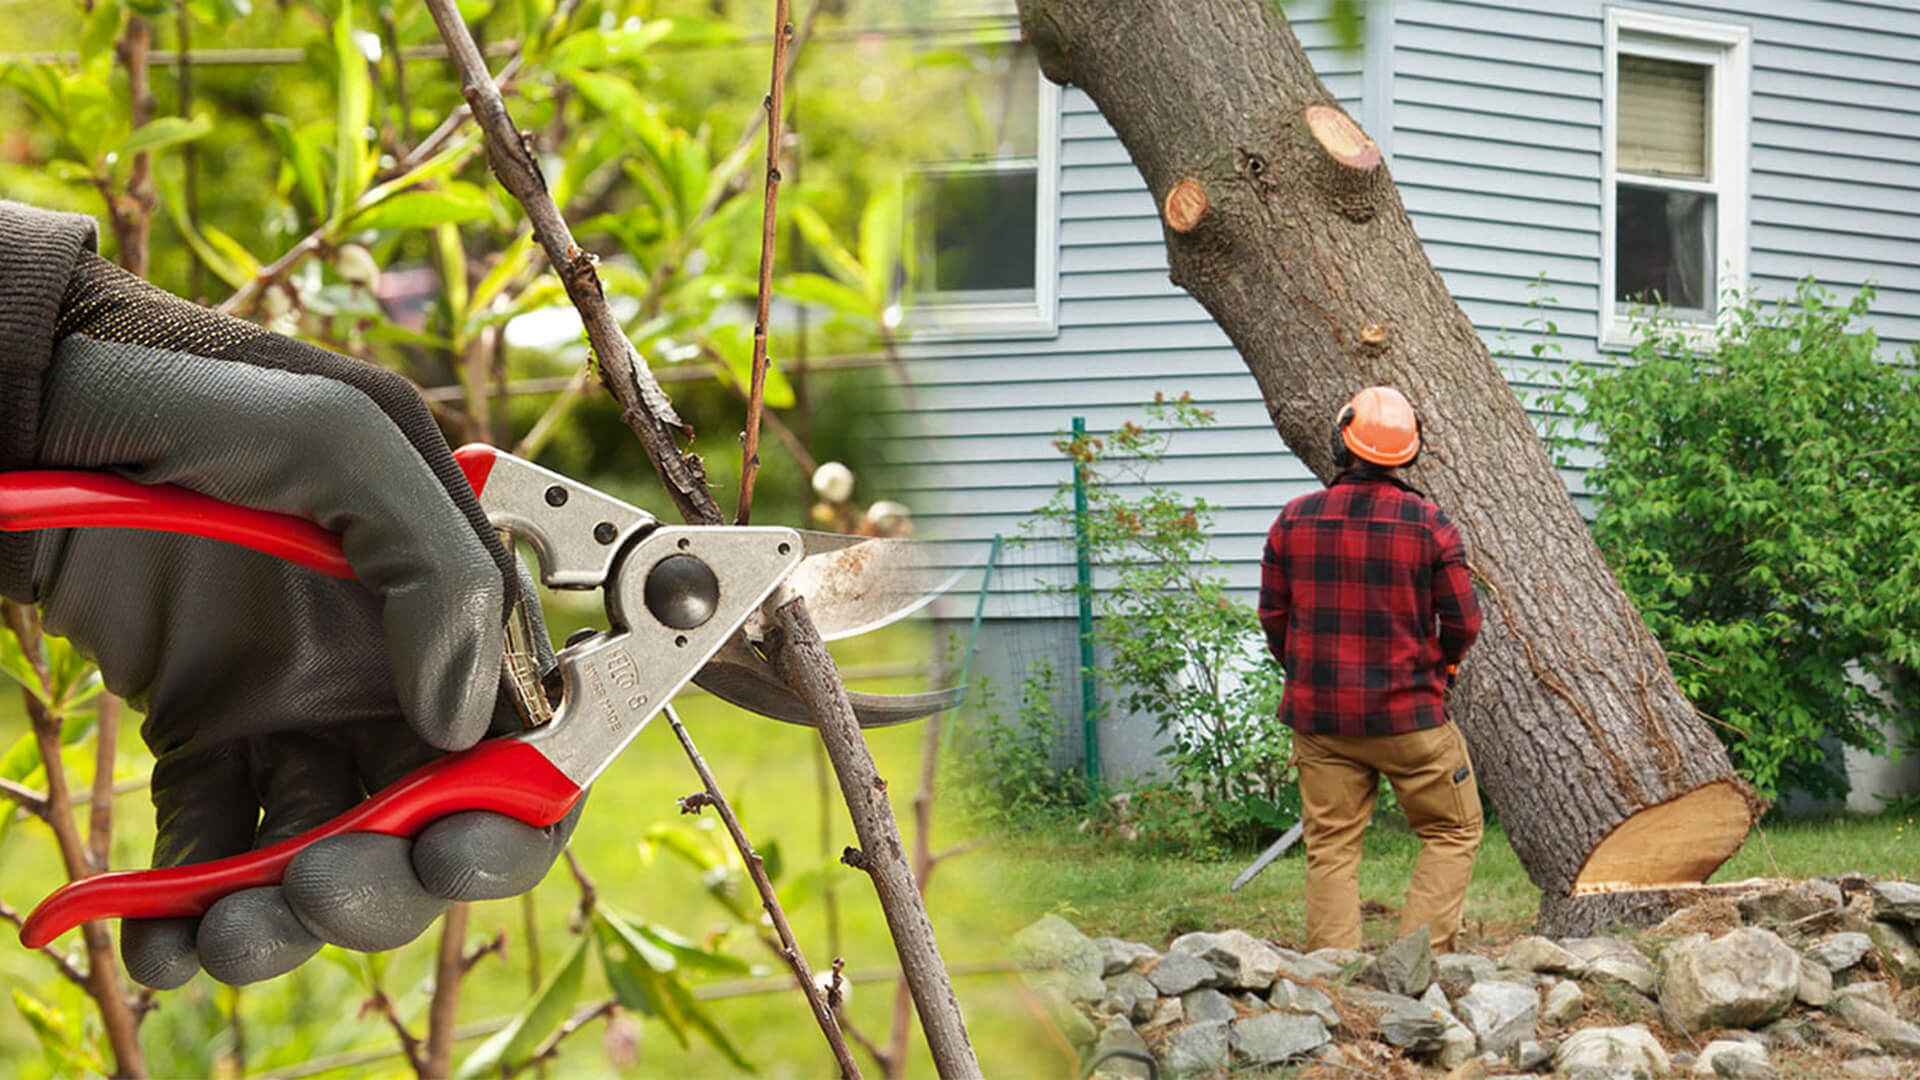 Tree pruning & tree removal-Sun City FL Tree Trimming and Stump Grinding Services-We Offer Tree Trimming Services, Tree Removal, Tree Pruning, Tree Cutting, Residential and Commercial Tree Trimming Services, Storm Damage, Emergency Tree Removal, Land Clearing, Tree Companies, Tree Care Service, Stump Grinding, and we're the Best Tree Trimming Company Near You Guaranteed!